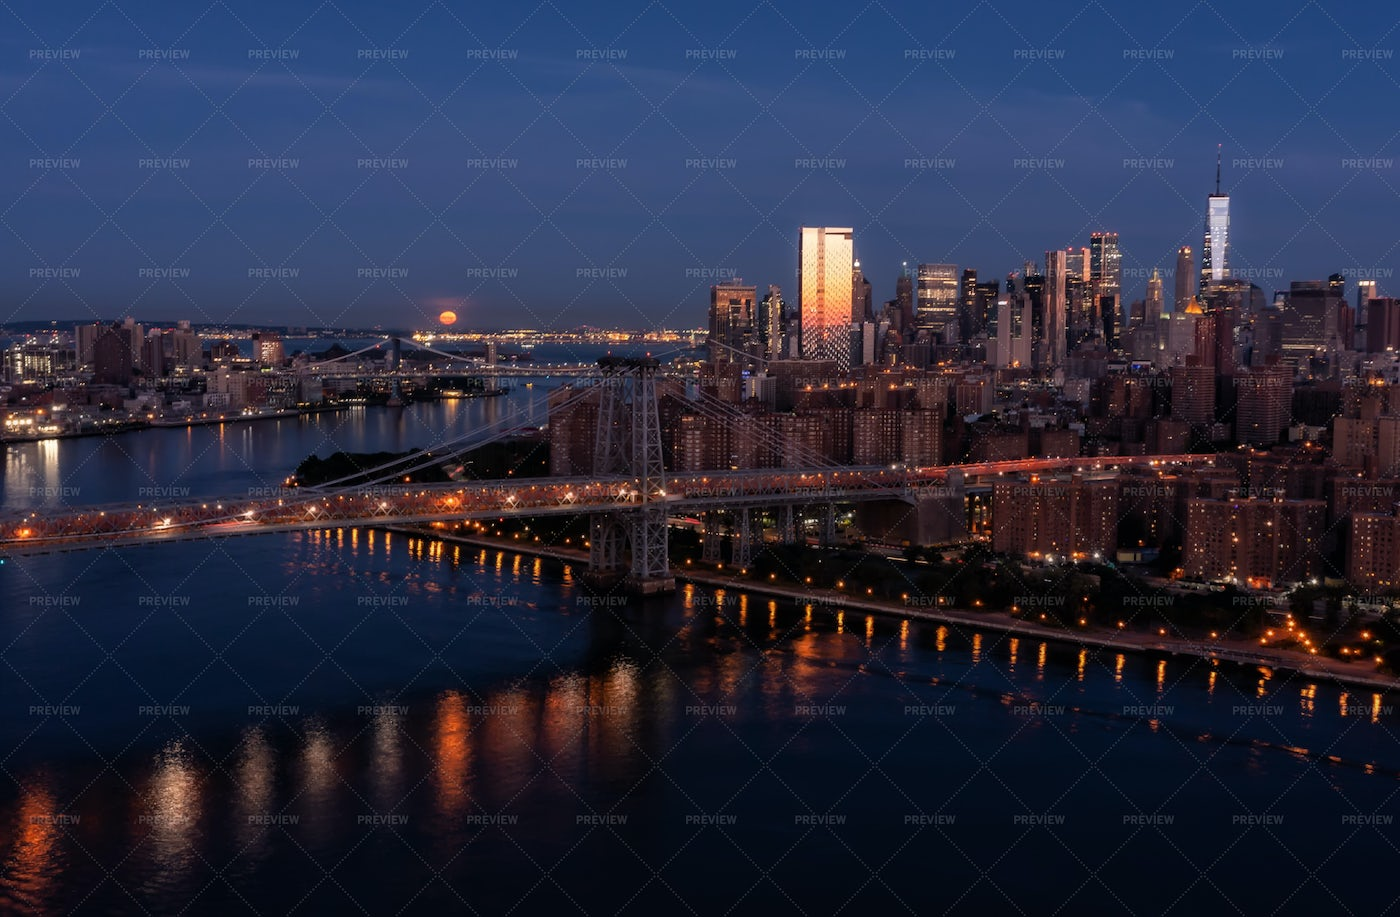 East River With Full Moon: Stock Photos